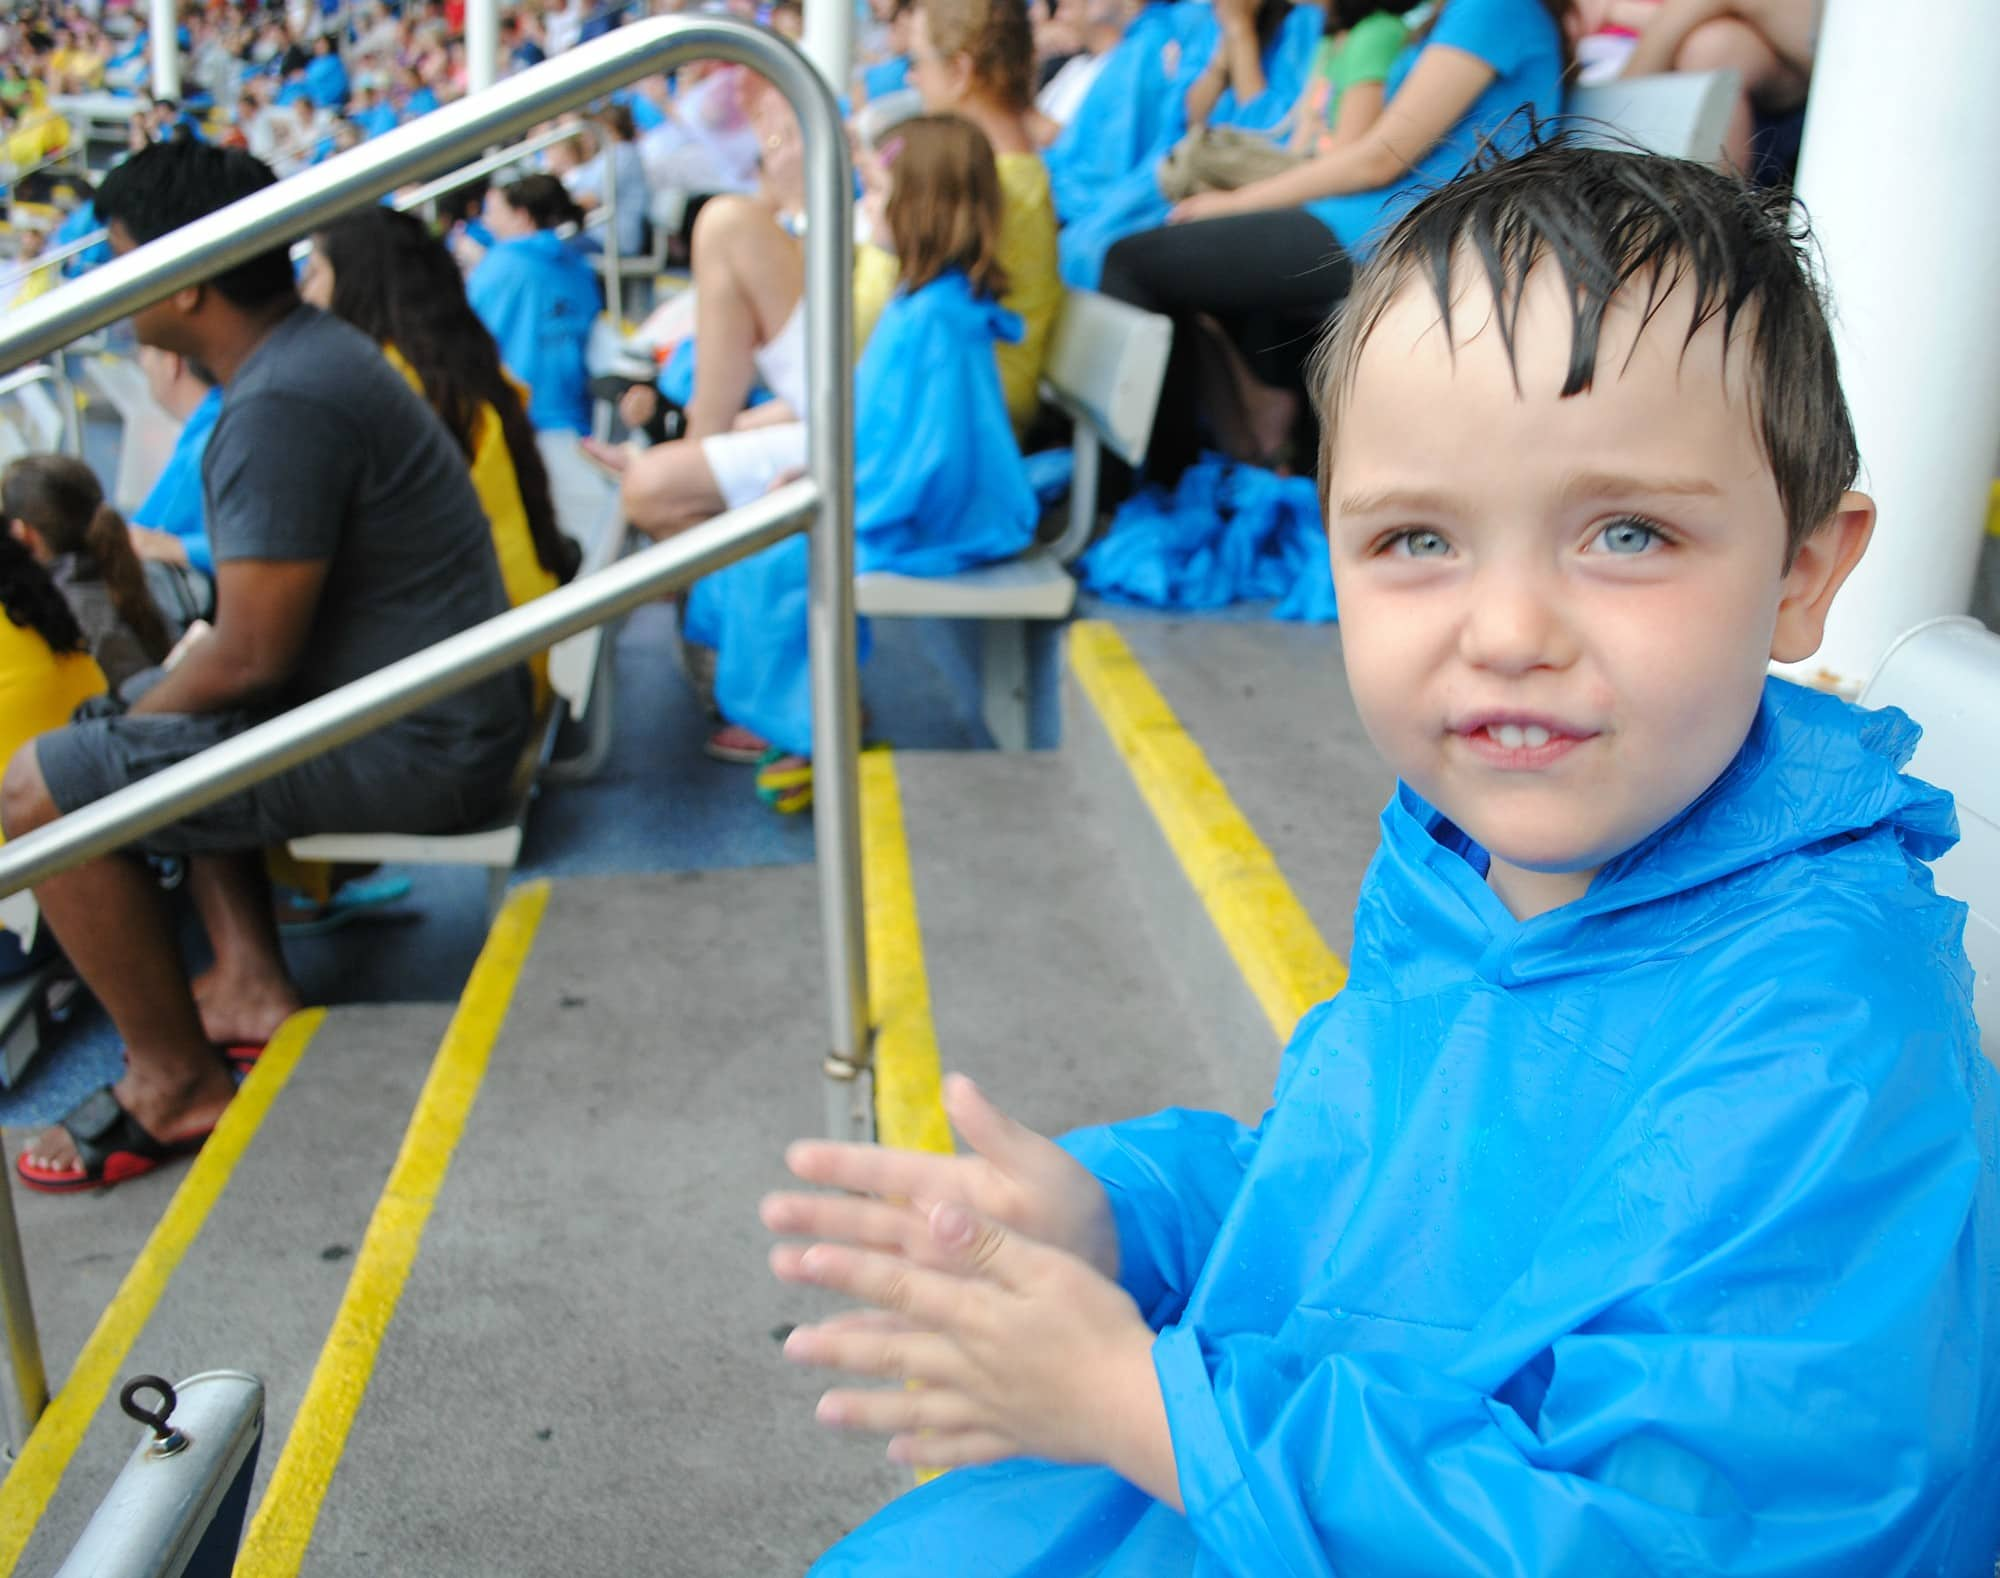 SeaWorld Orlando in the rain is still lots of fun for all ages